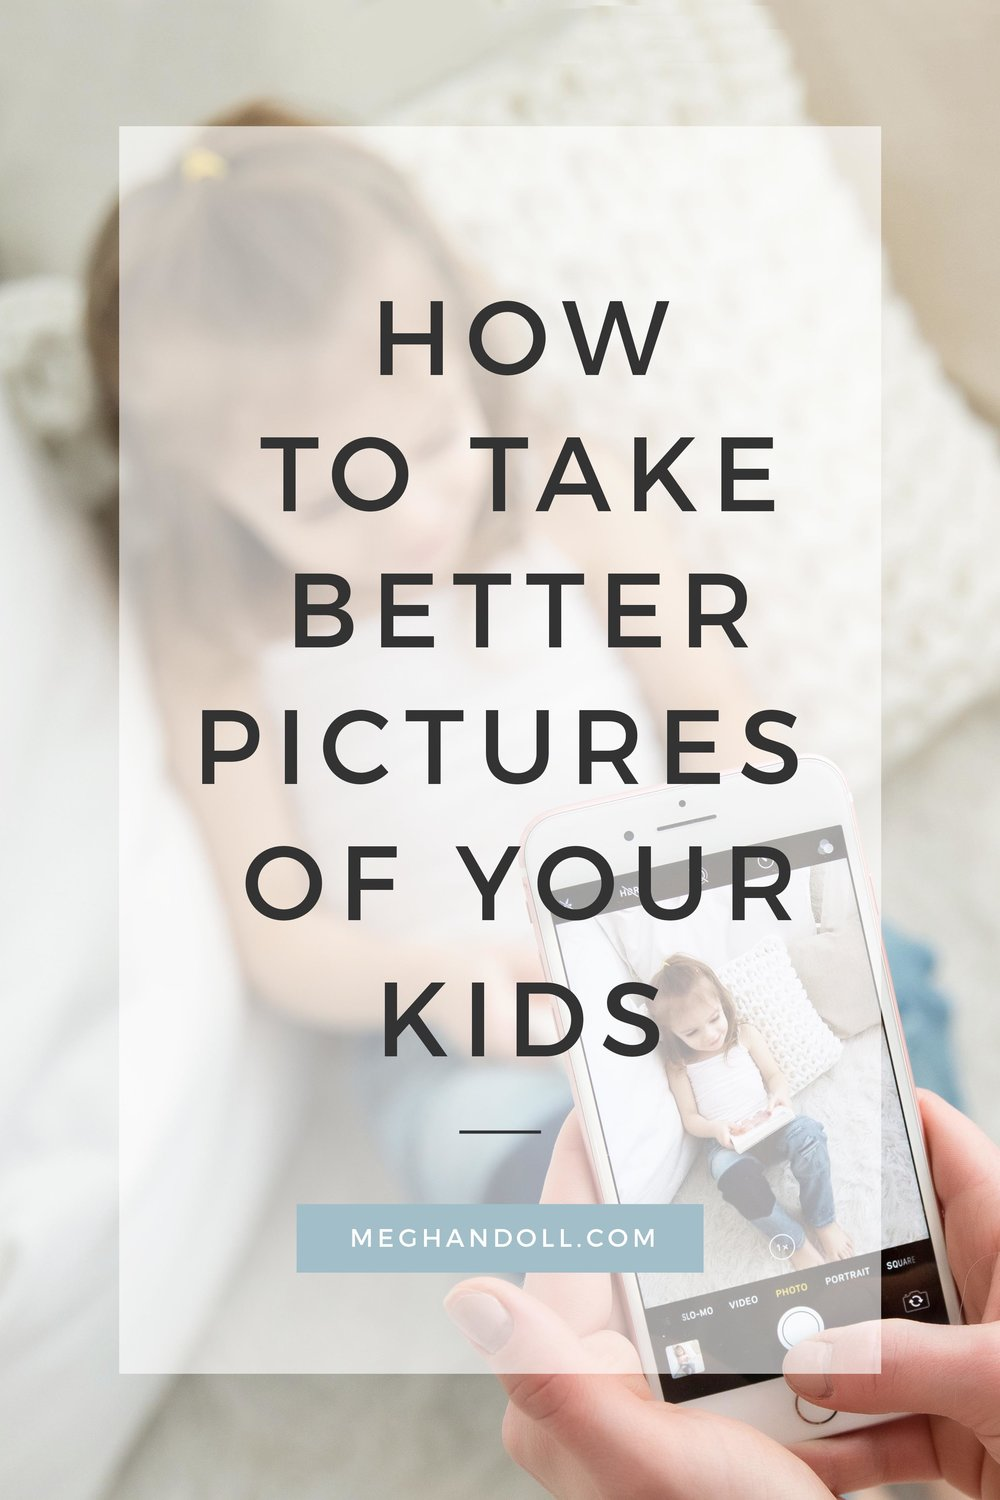 7_ways_to_take_better_pictures_of_your_kids.jpg